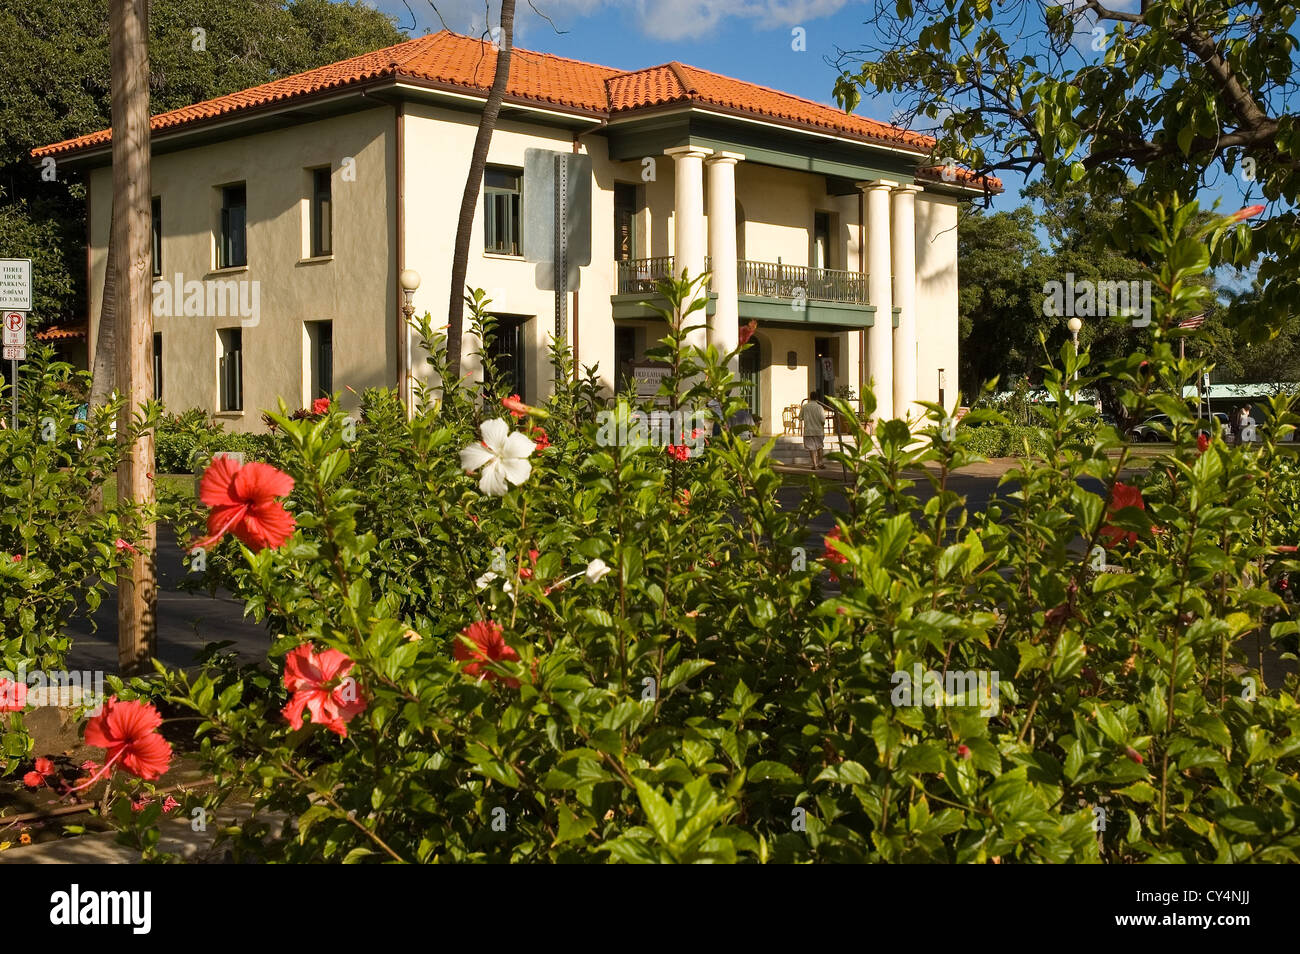 Elk284-4157 Hawaii, Maui, Lahaina, Old Courthouse Museum on Banyan Tree Square, with hibiscus blooming - Stock Image